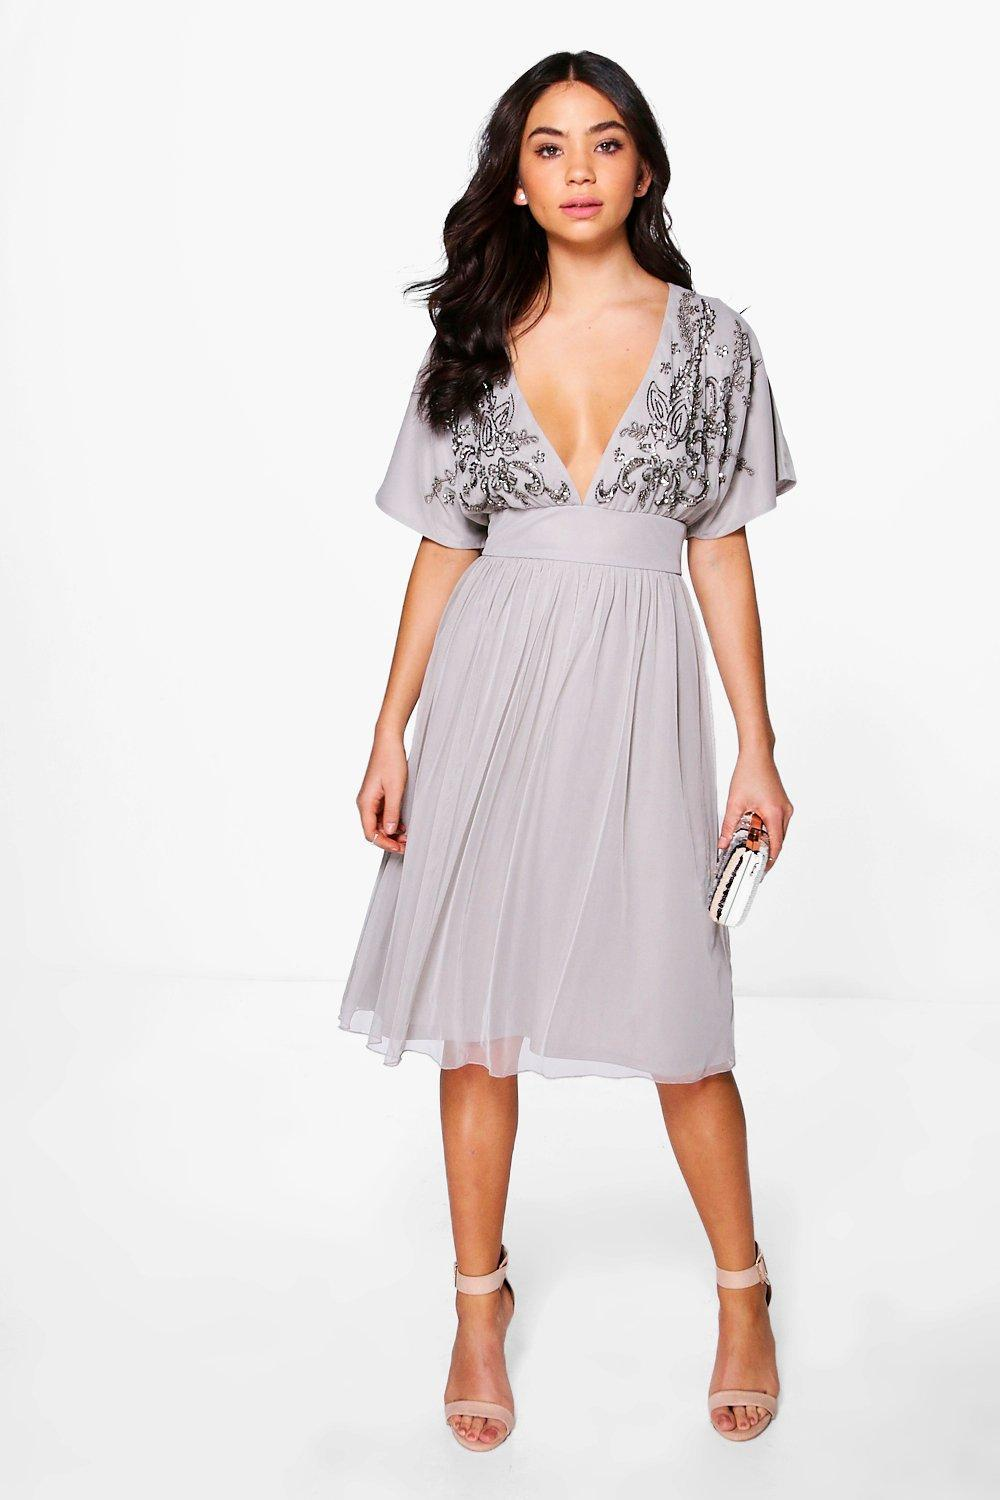 6a5380868a4b Lyst - Boohoo Boutique Megan Embellished Skater Dress in Gray